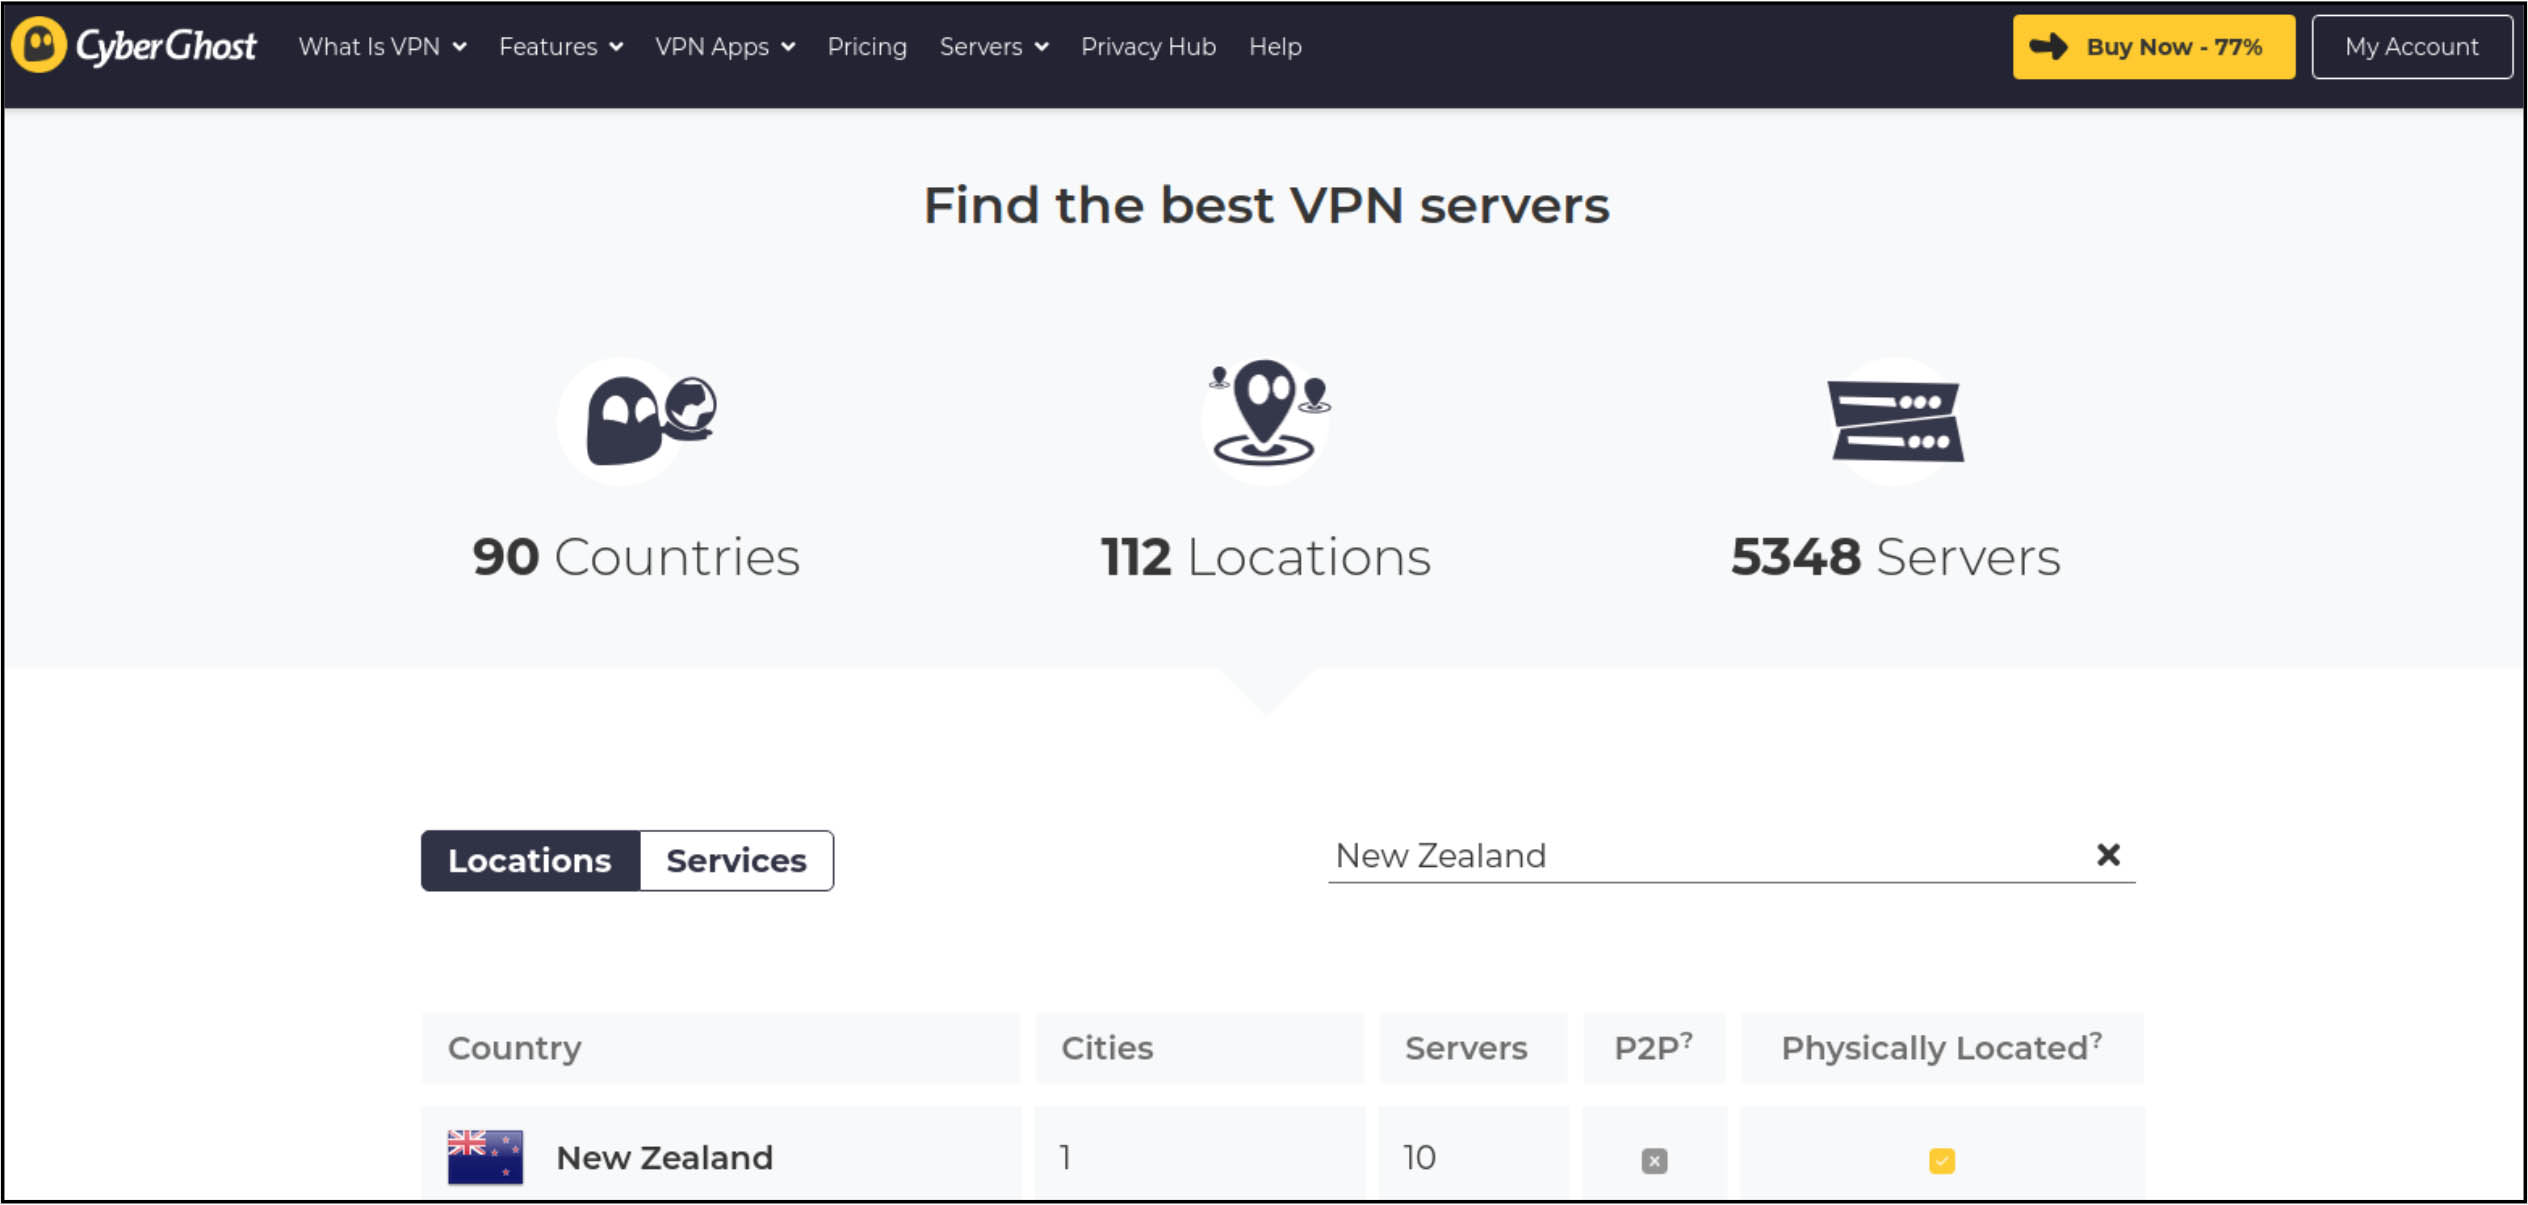 Screenshot of CyberGhost's vendor welcome page for its New Zealand VPN service with product information about its 5,348 servers in 112 locations and countries and 10 servers in Auckland, and purchase links.